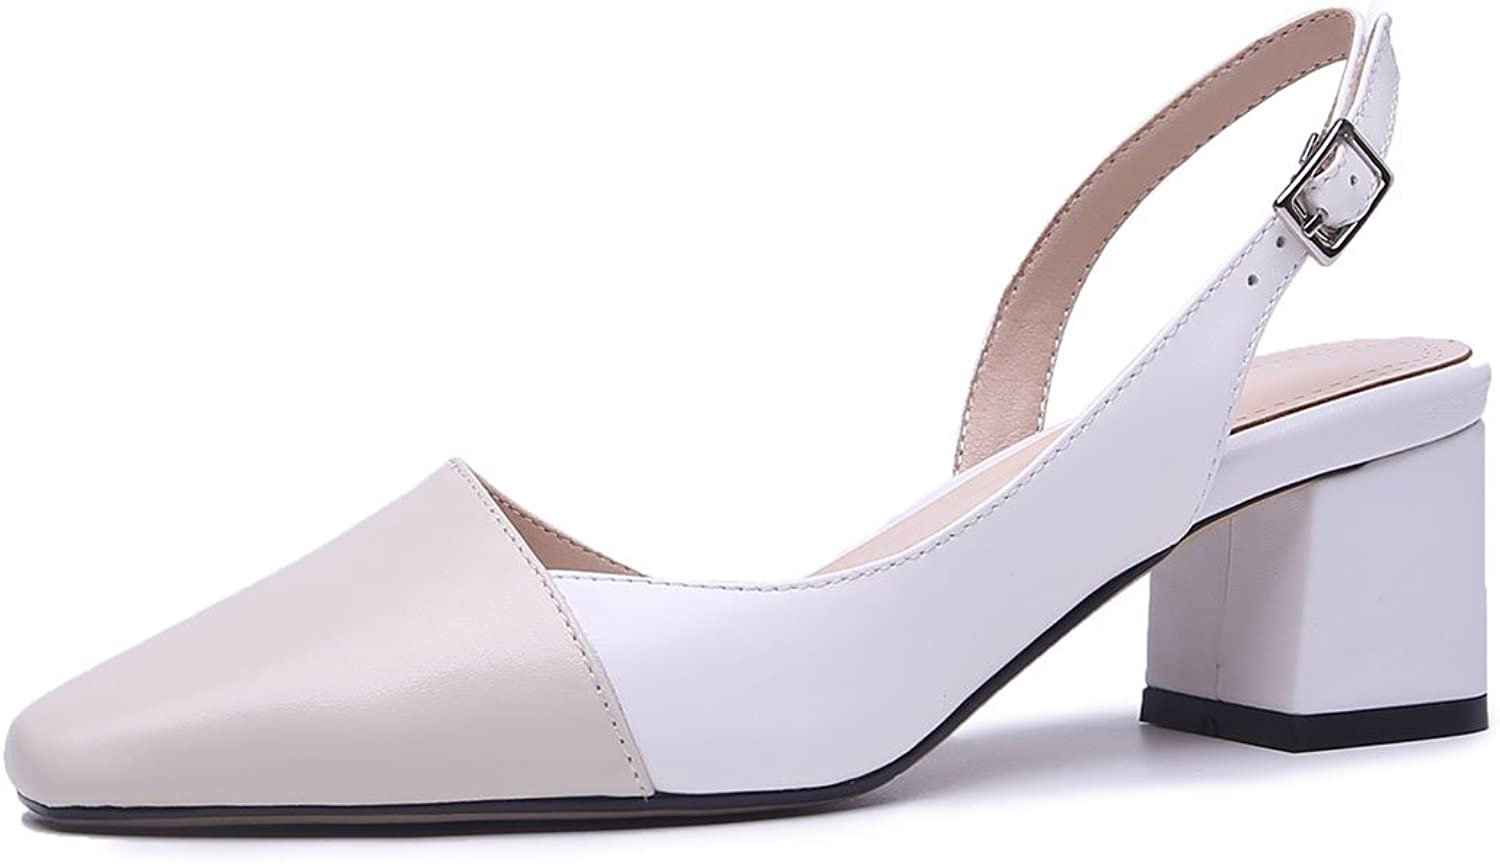 SXHDMY Ladies Leather High Heels Summer Mixed color Sandals Office Work shoes Court shoes Water Pump 34-39 Yards high Heels (color   Light Apricot+White, Size   5.5 US)